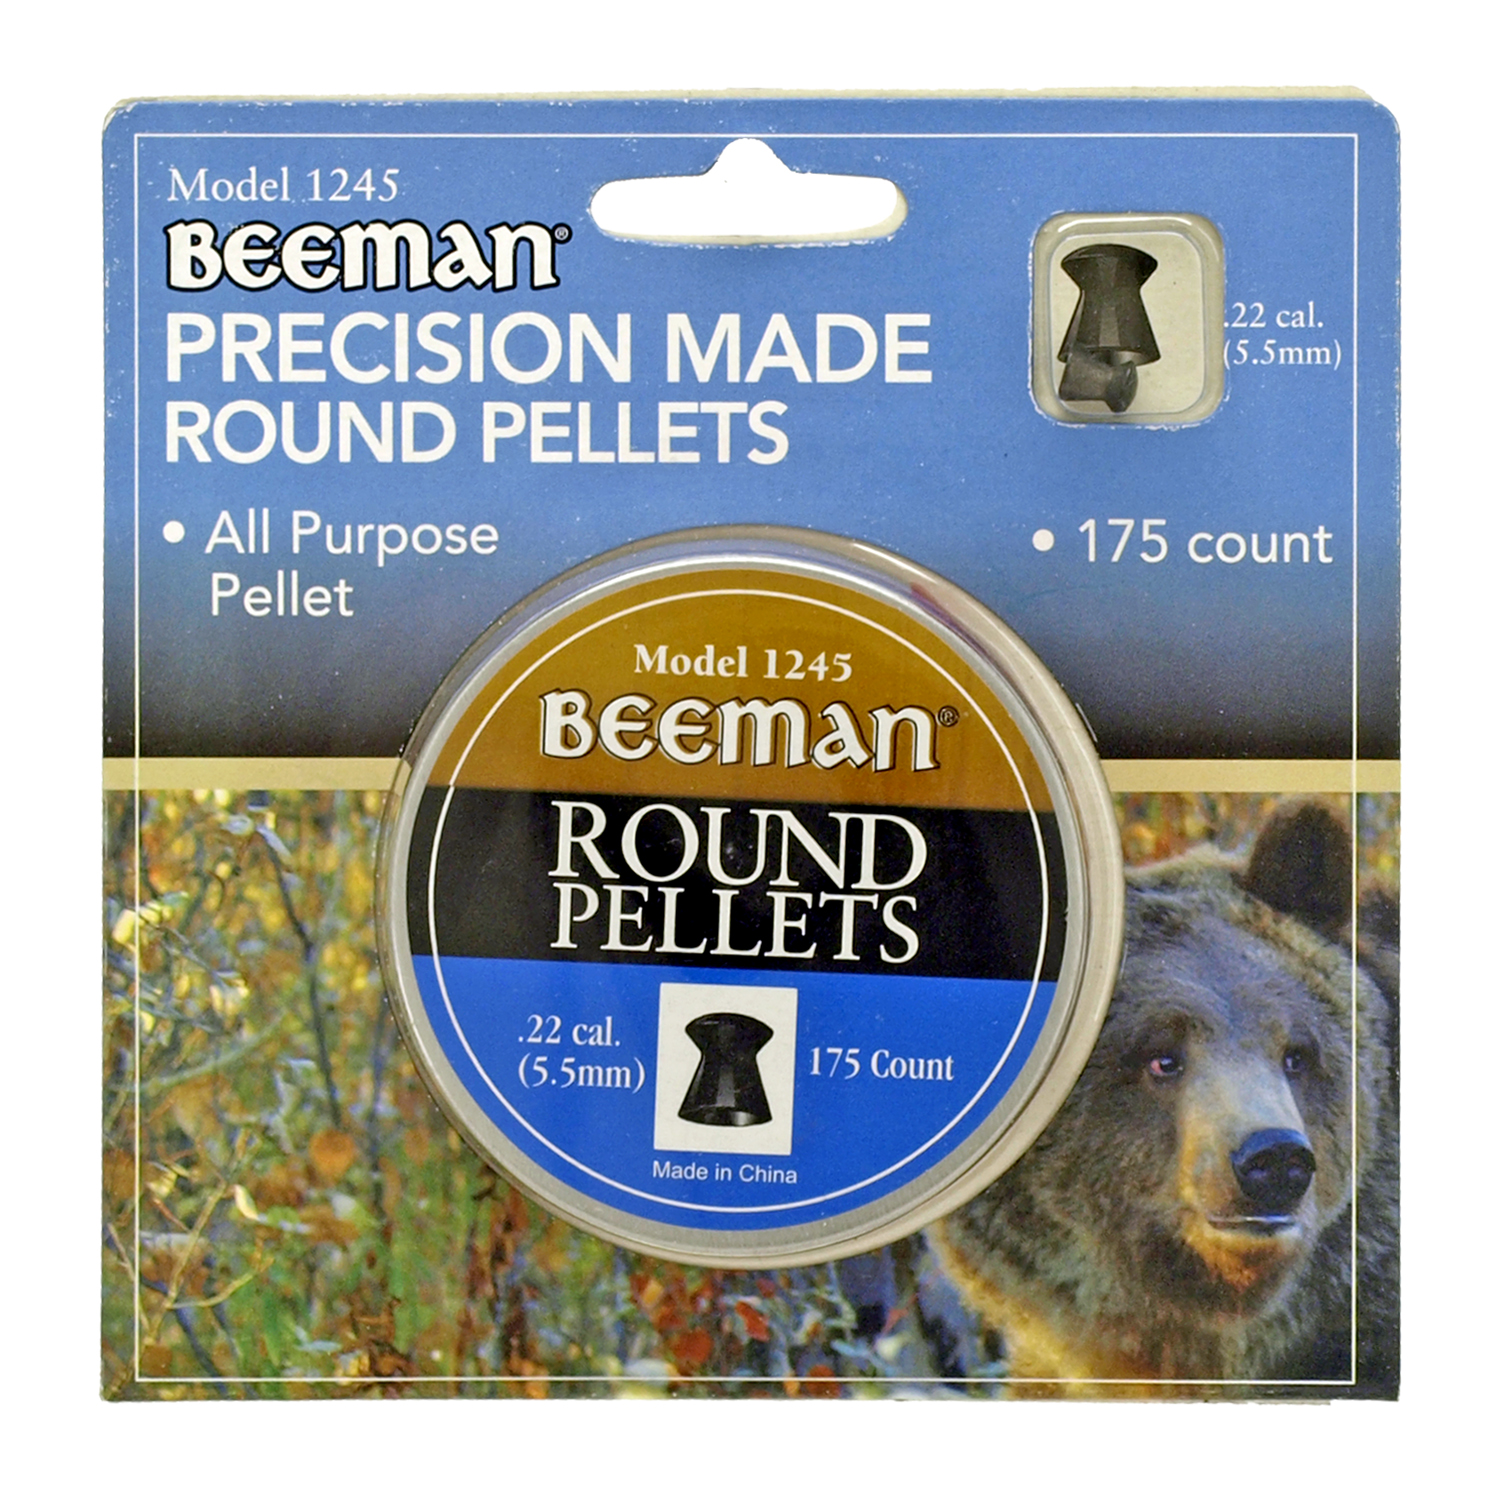 Beeman Precision Made Round Pellets - 175 Ct.